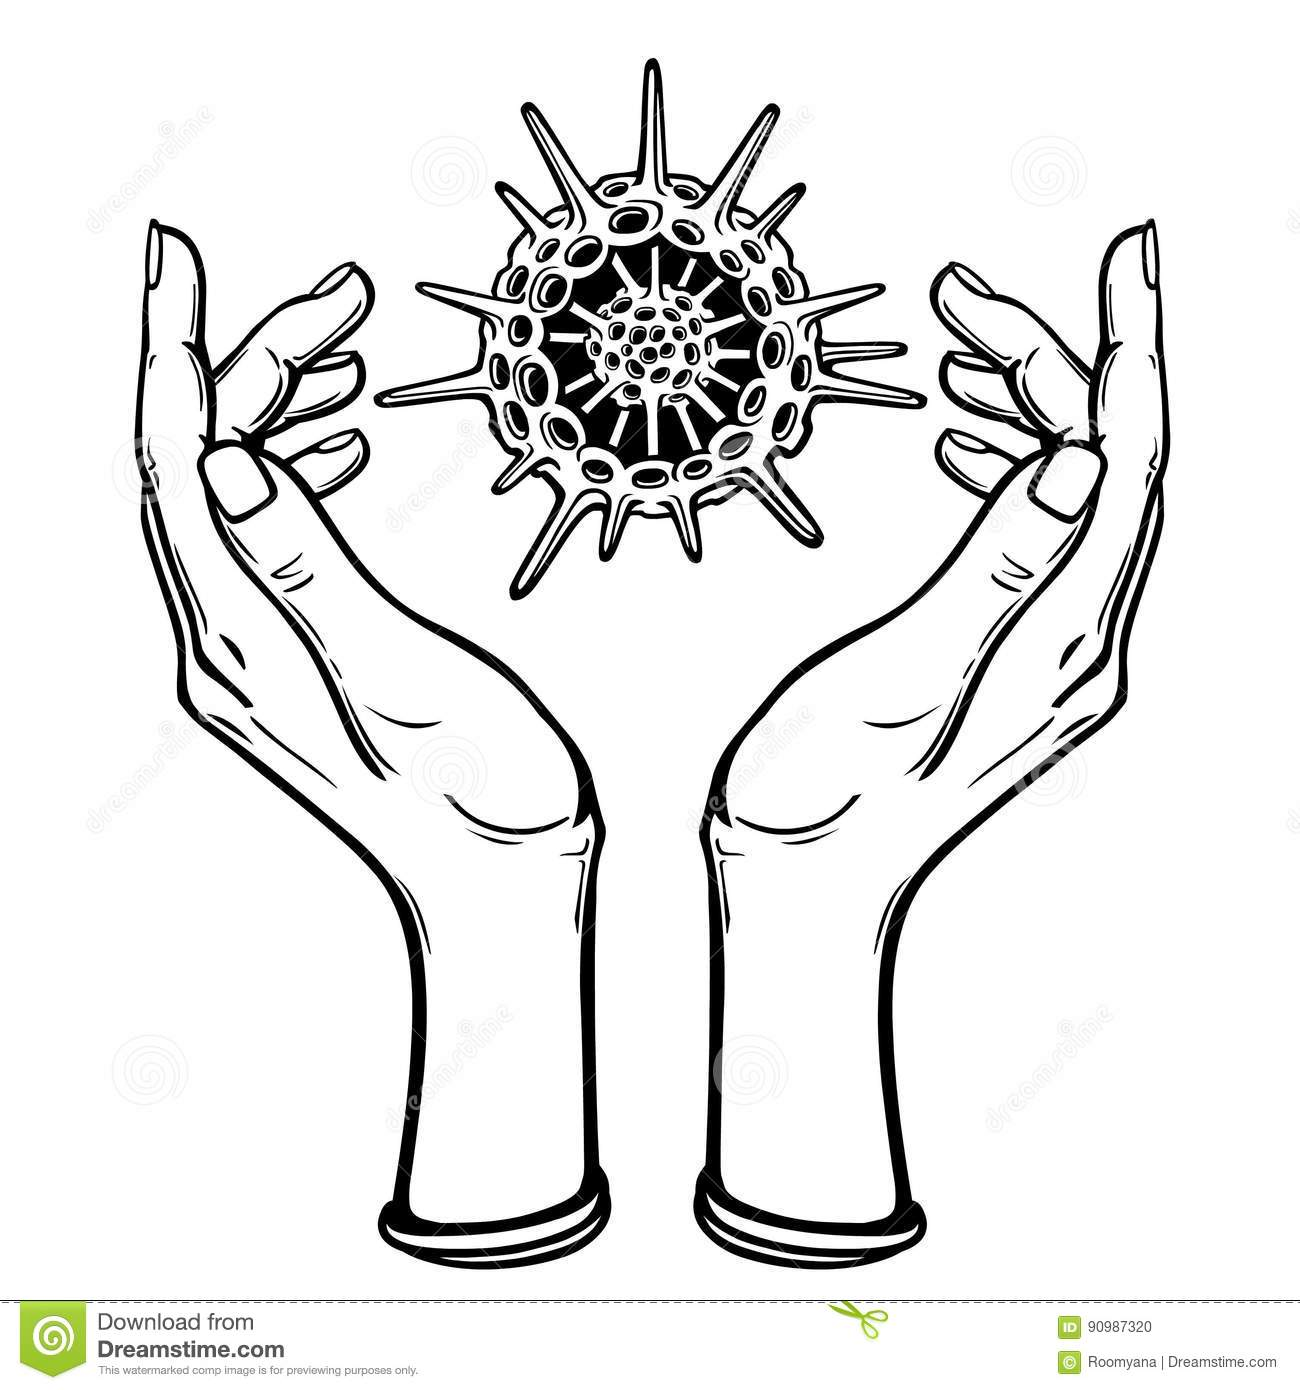 Skeleton Hand Coloring In Eye Coloring Pages